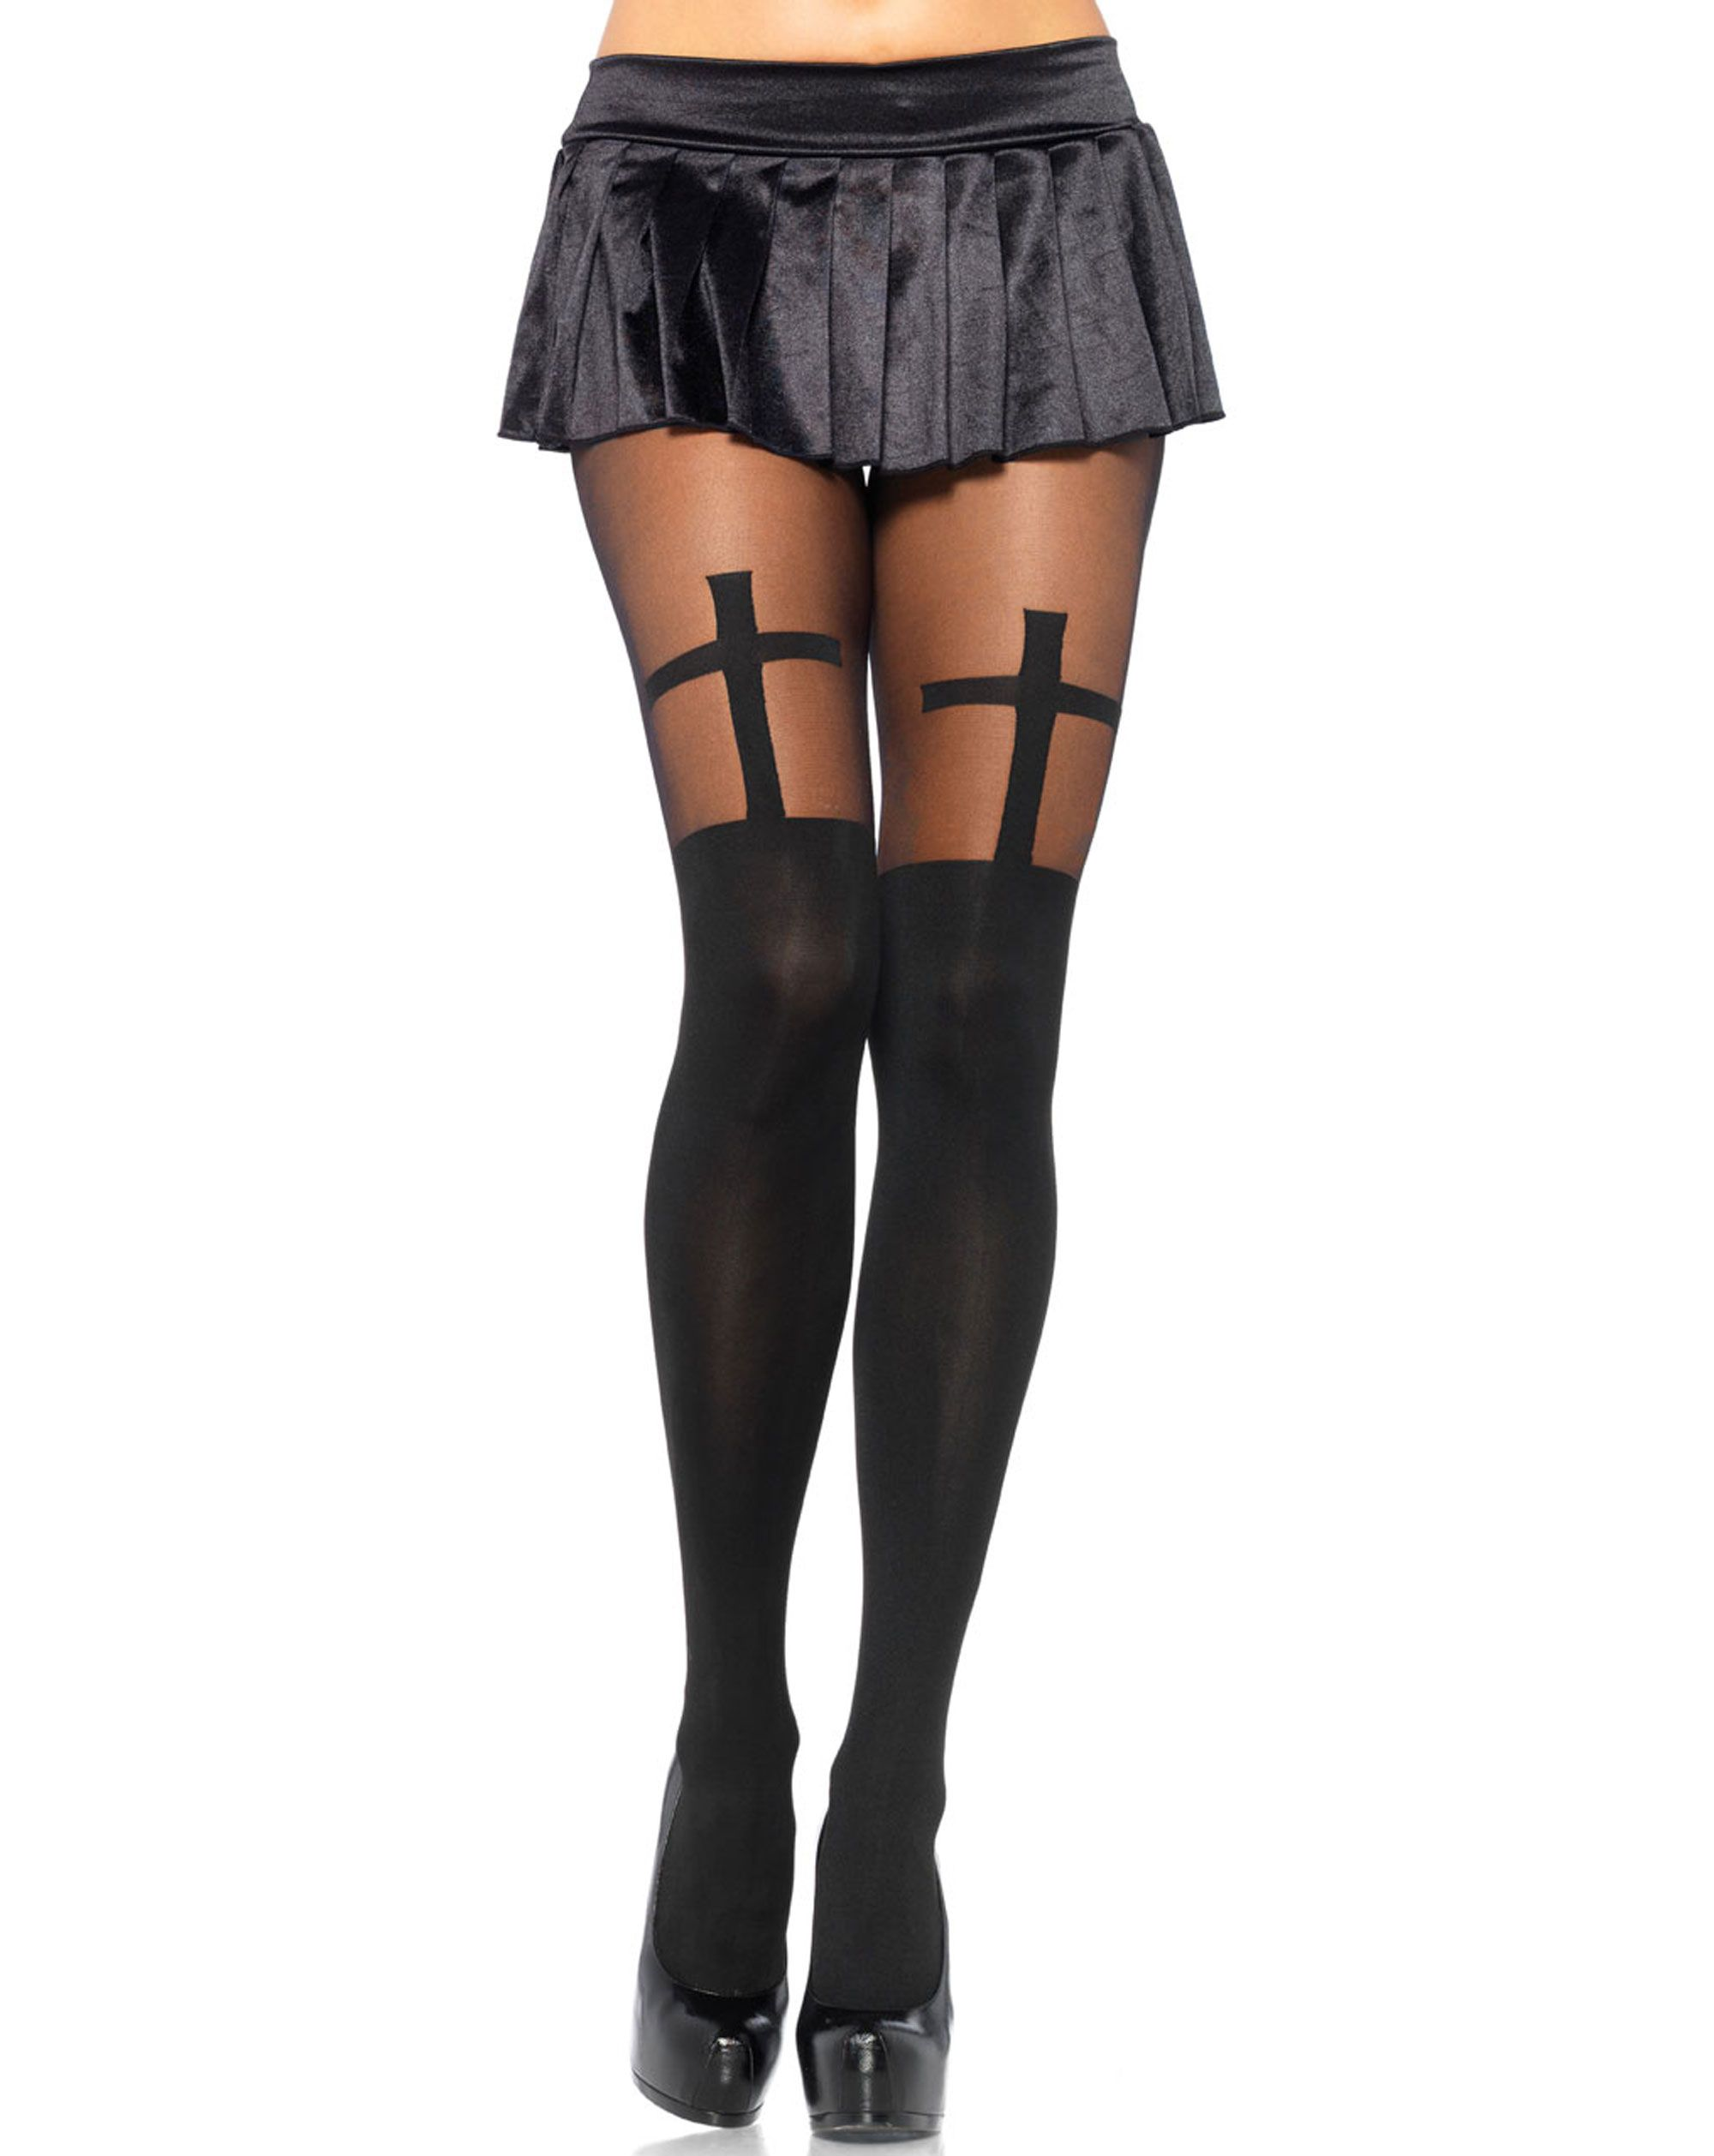 718191fcf0 sexy knee high   Fashionistas!   Suspender tights, Sexy stockings ...